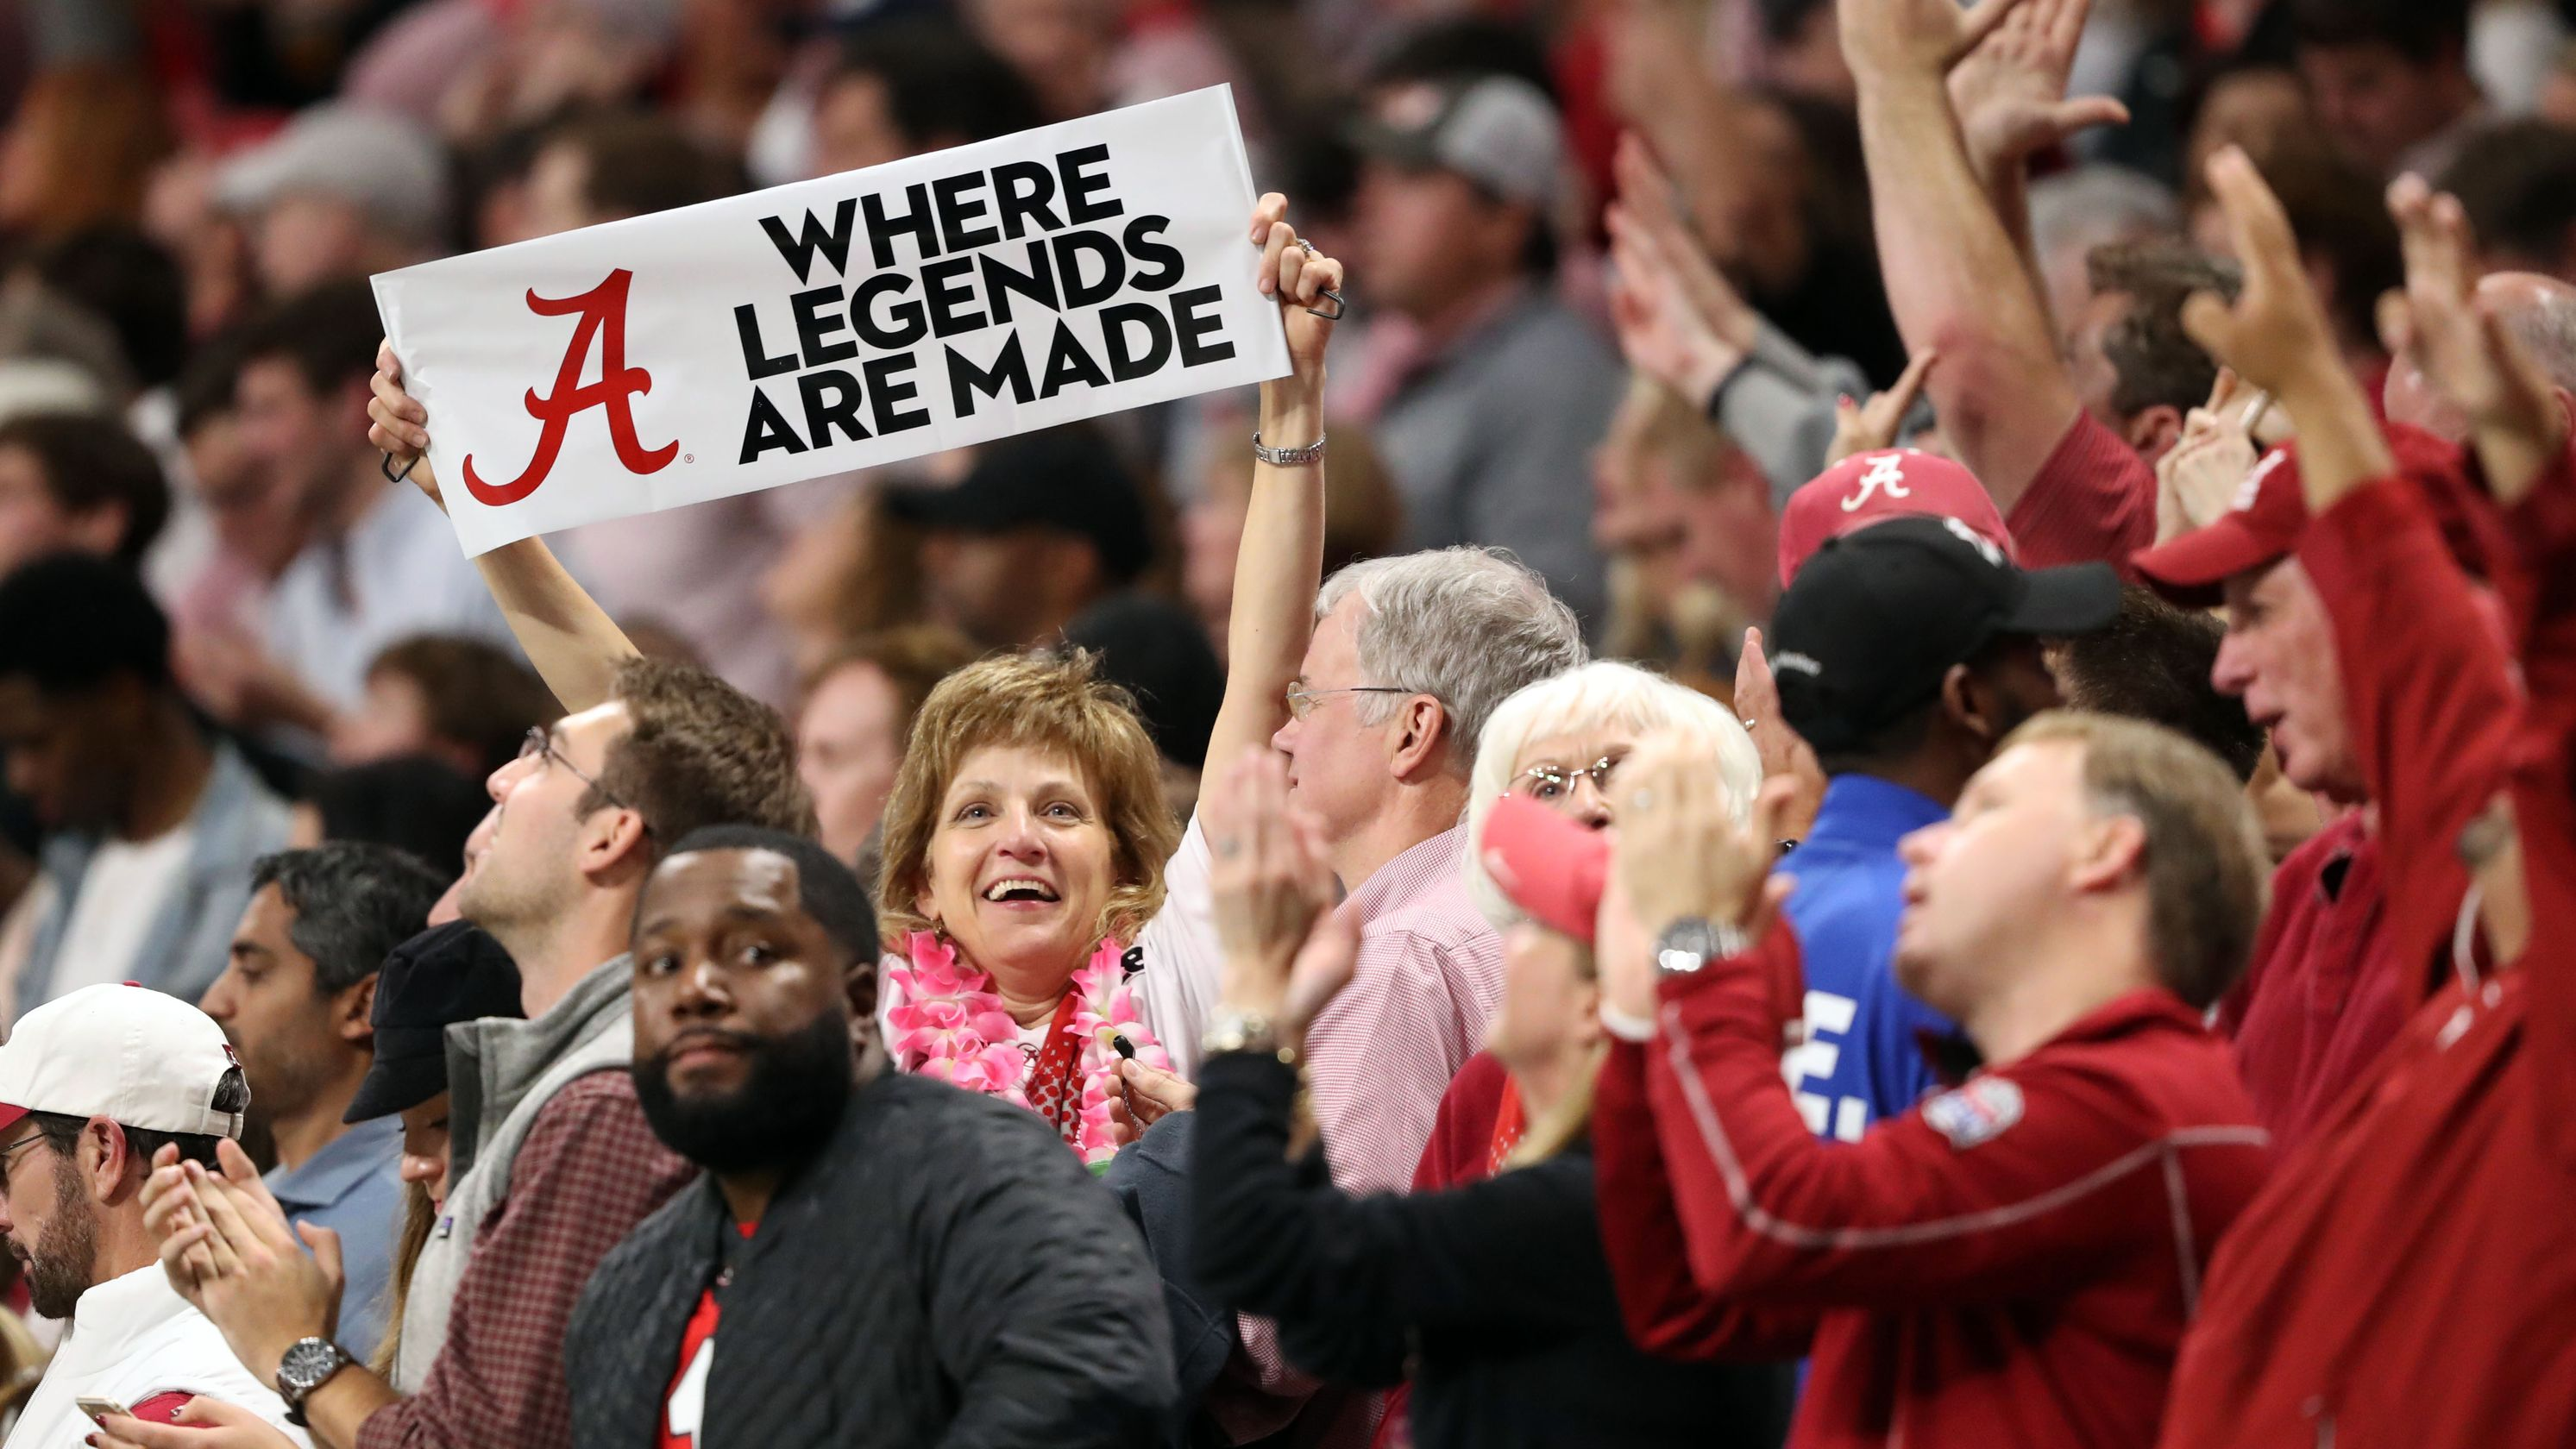 Which of the College Football Playoff teams is the most likable, according to Twitter?